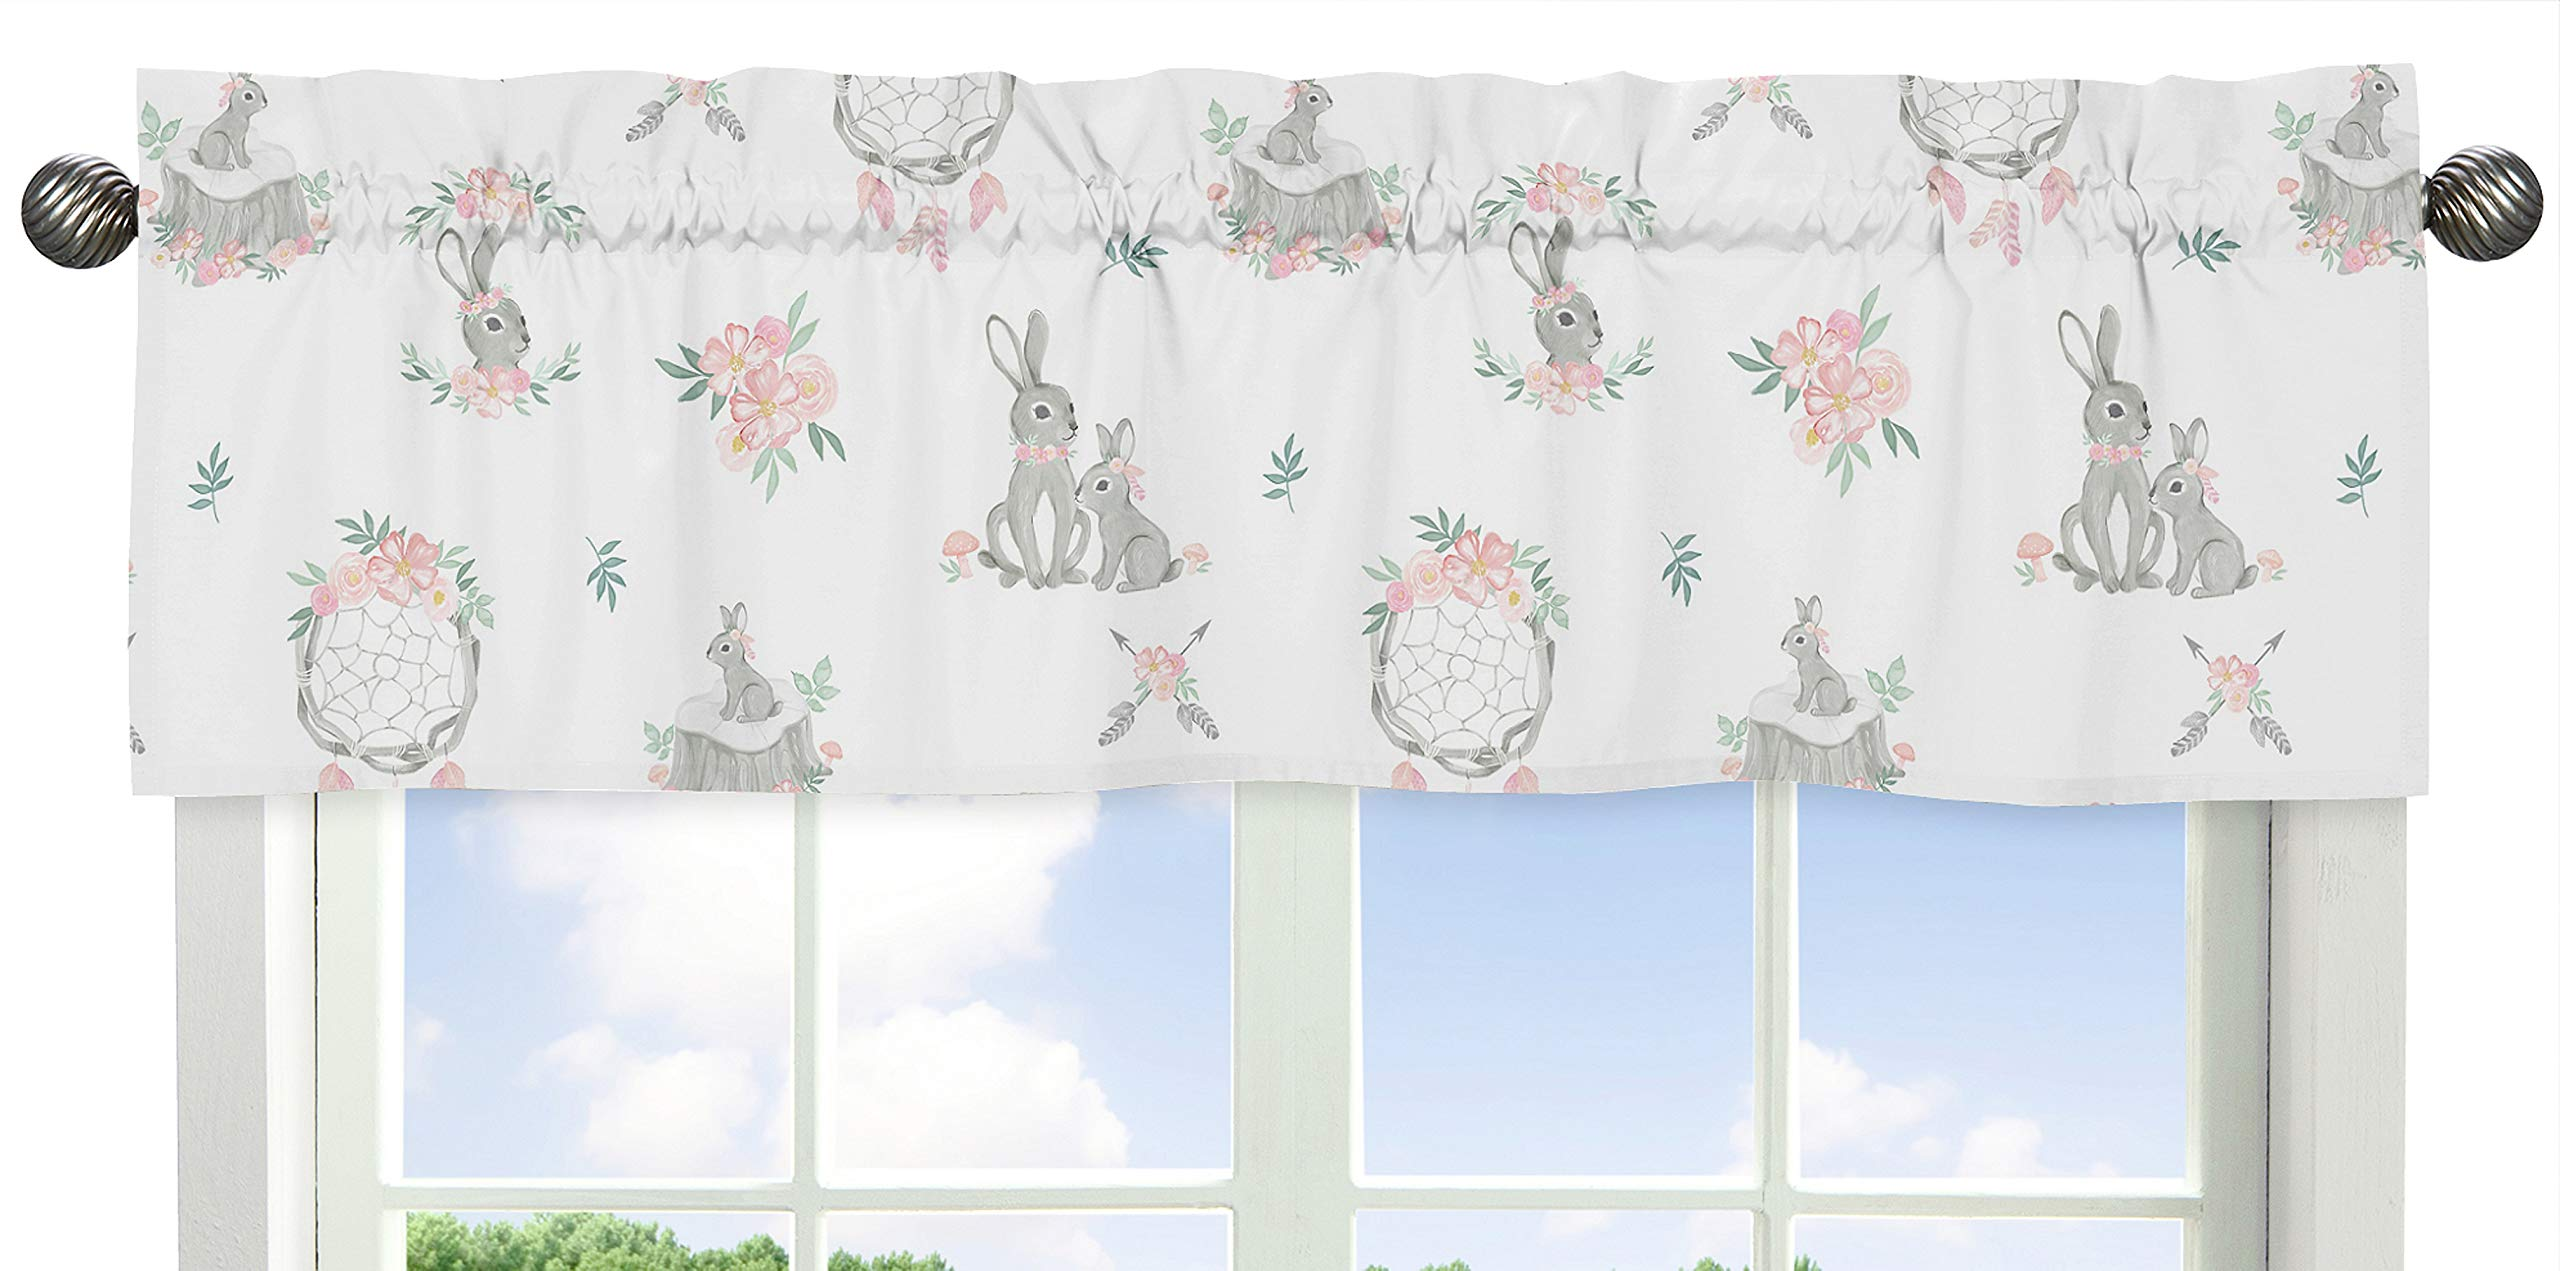 Sweet Jojo Designs Blush Pink and Grey Woodland Boho Dream Catcher Arrow Window Treatment Valance for Gray Bunny Floral Collection - Watercolor Rose Flower